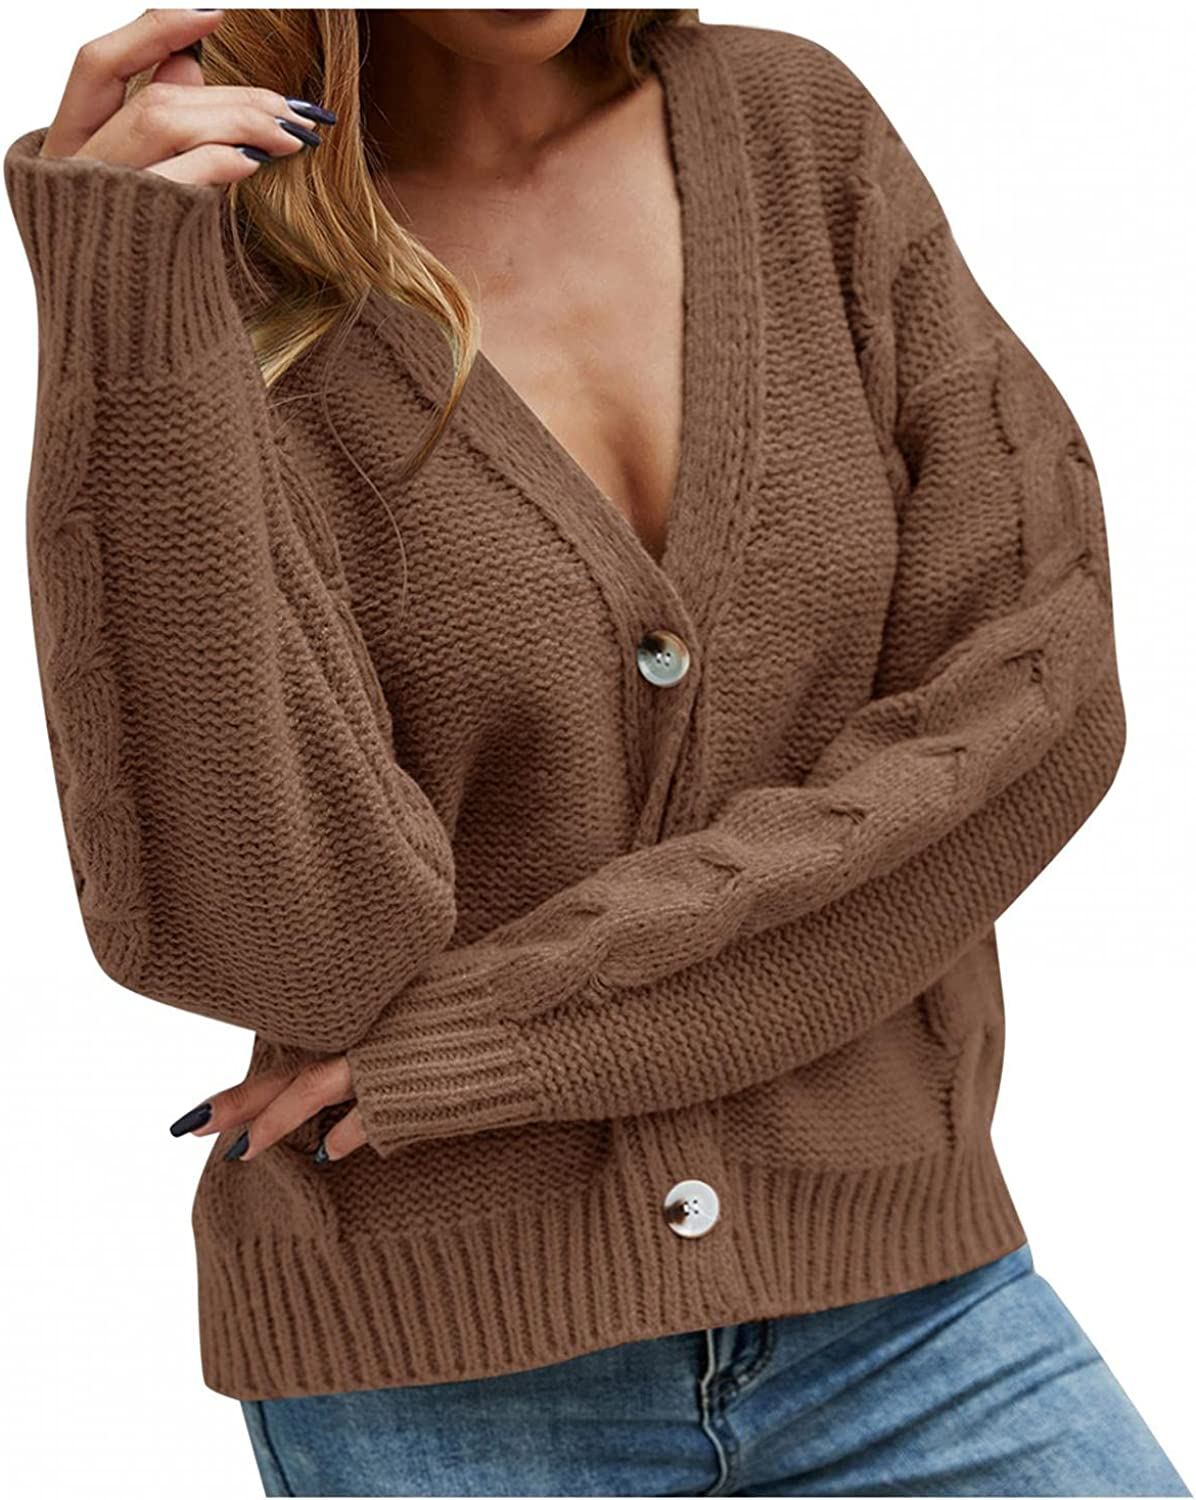 FGDJEE Cardigan Sweaters for Women Open Front Button Loose Fit Short Deep V Knitted Coat Solid Color Cardigan Outwear